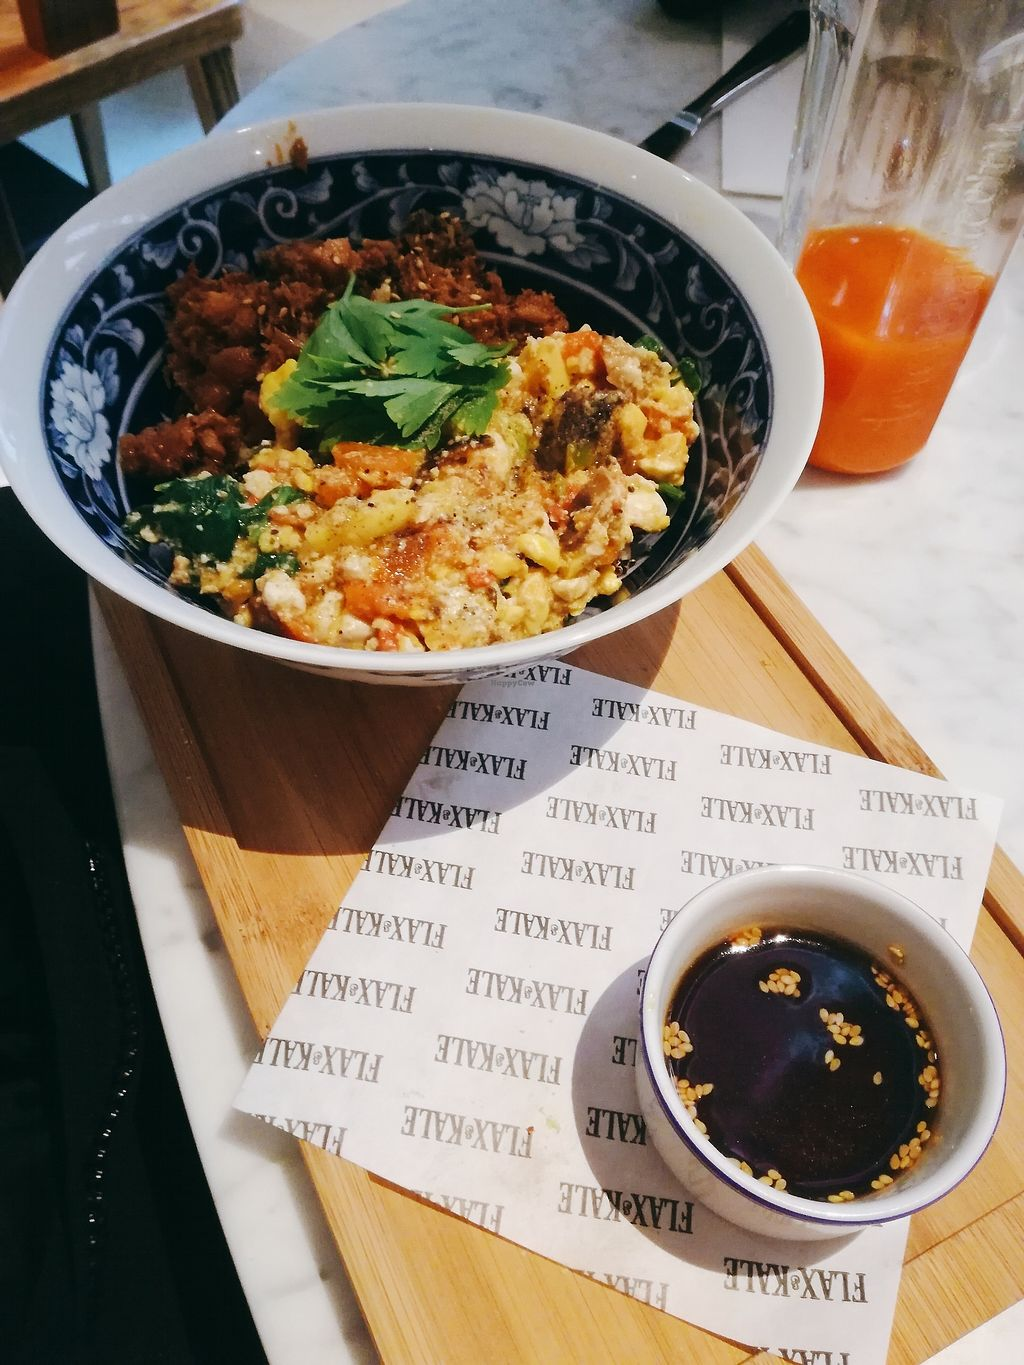 """Photo of Flax & Kale - Placa Castella  by <a href=""""/members/profile/Mdme.%20Mariais"""">Mdme. Mariais</a> <br/>Japanese style scramble dish <br/> December 11, 2017  - <a href='/contact/abuse/image/53077/334470'>Report</a>"""